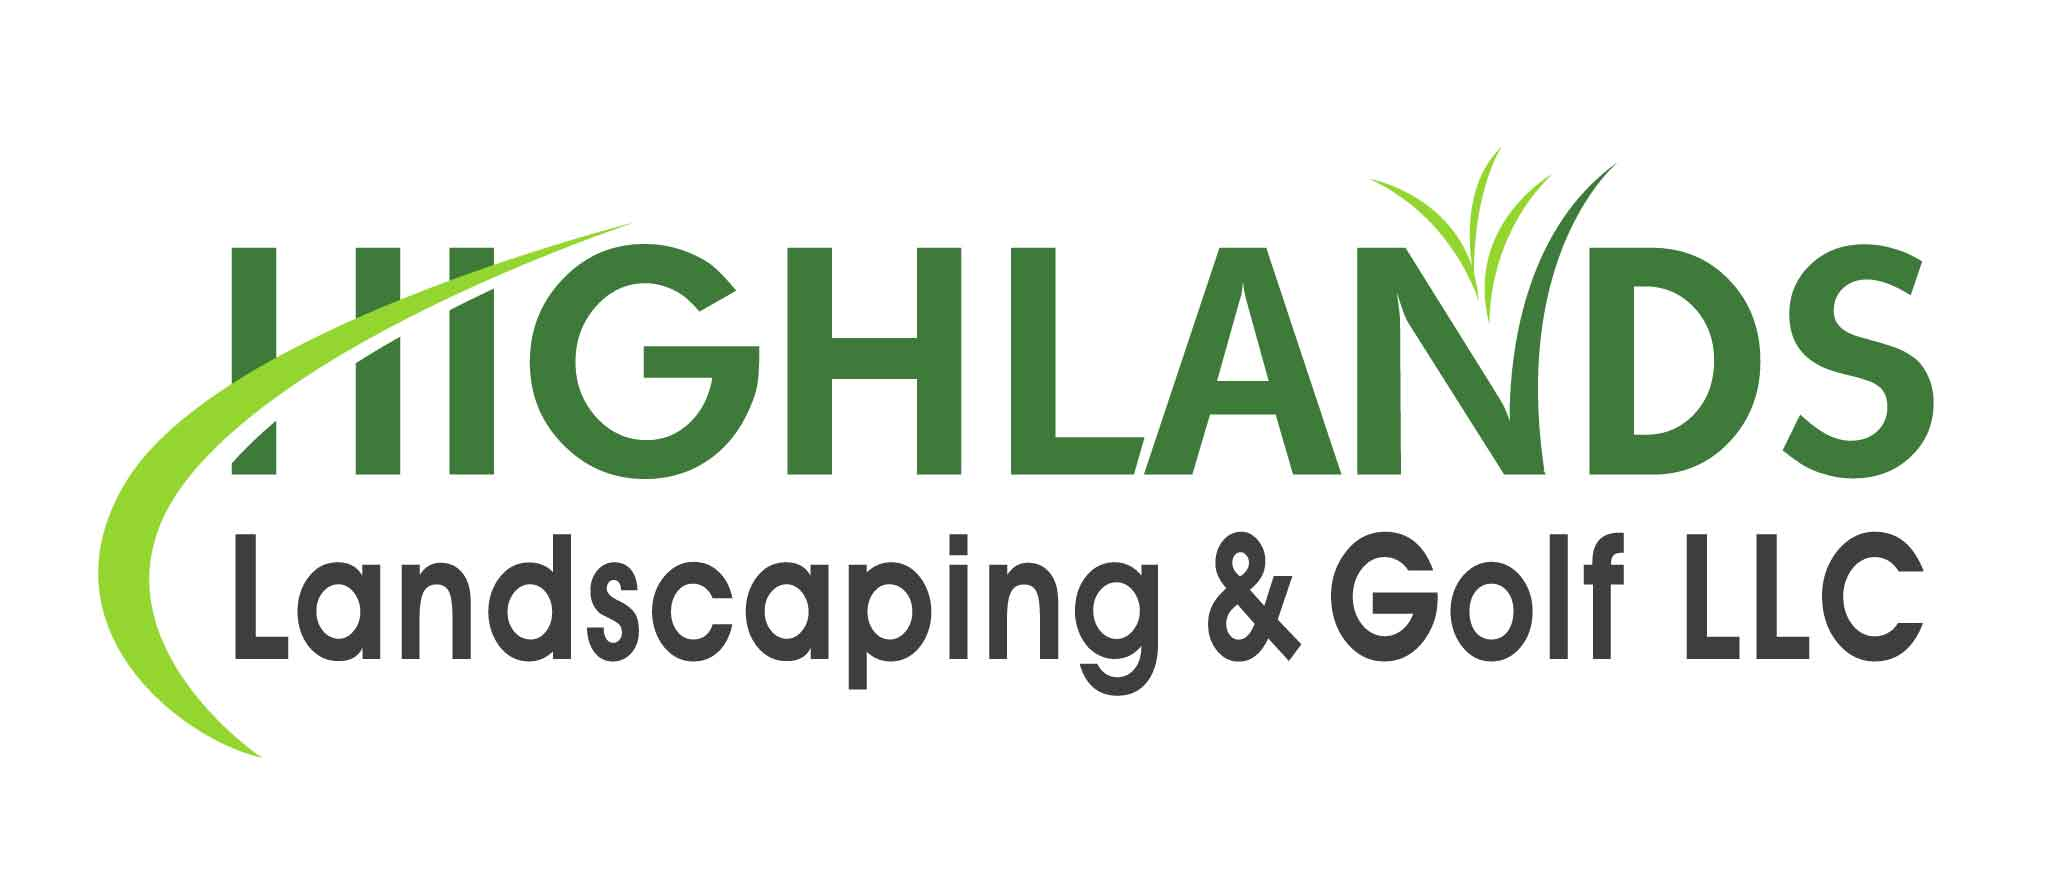 Highlands Landscaping and Golf LLC